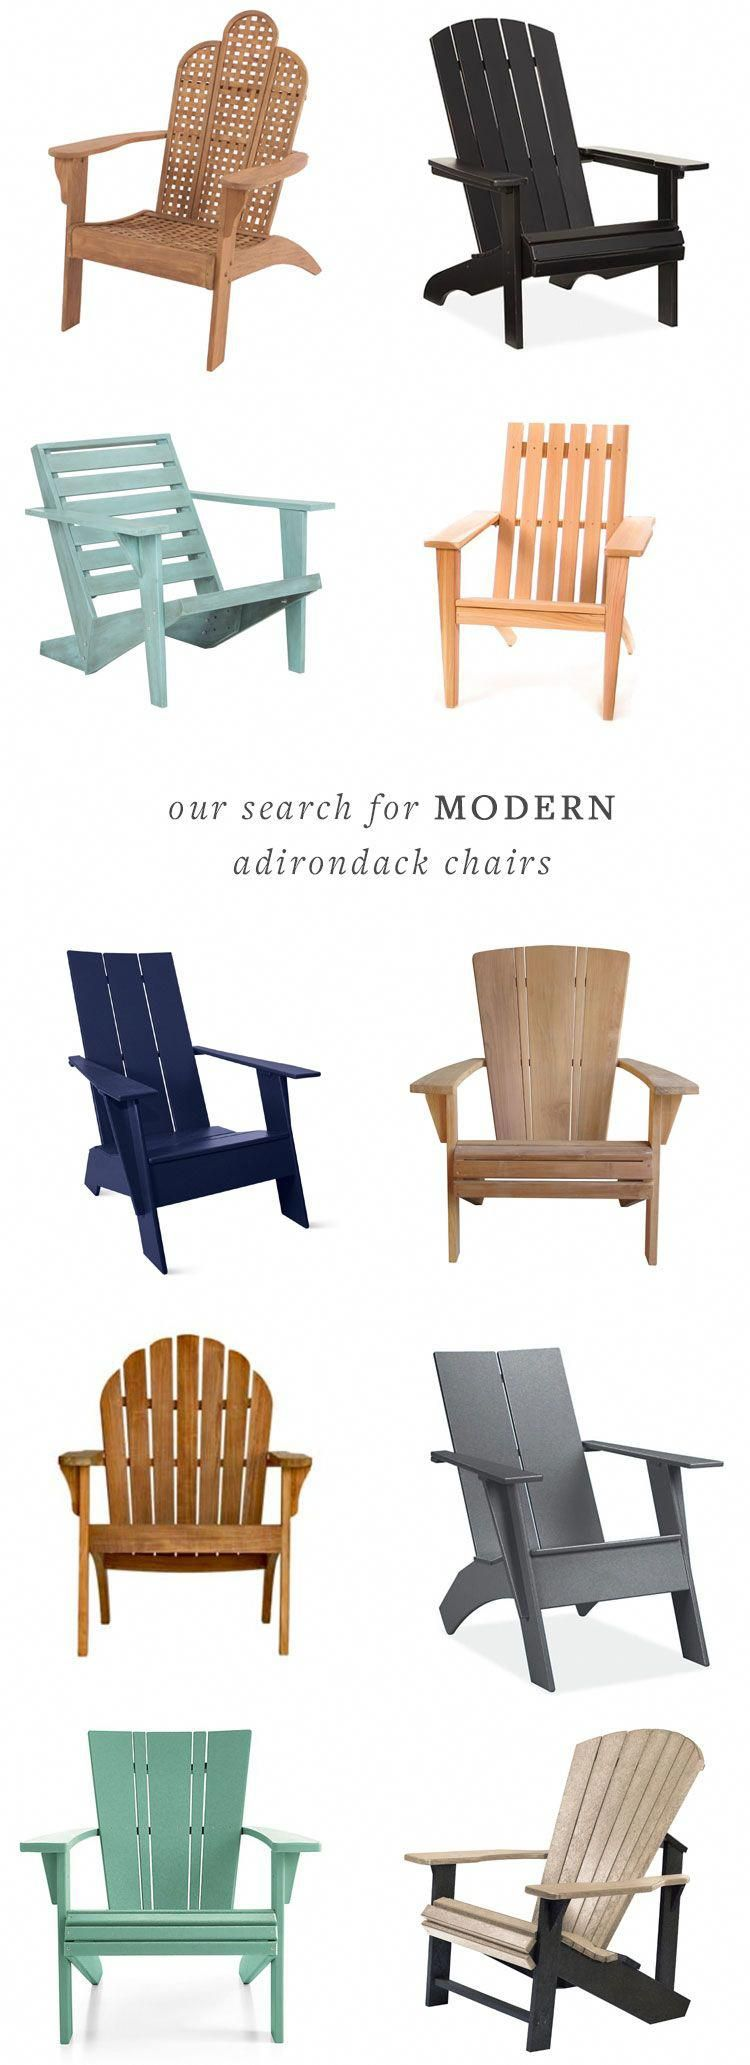 Front Porch Decorating Ideas With The Perfect Adirondack Chairs Our House Now A Home: Our Search For Modern Adirondack Chairs, The Perfect Addition For Summertime Entertaining On The